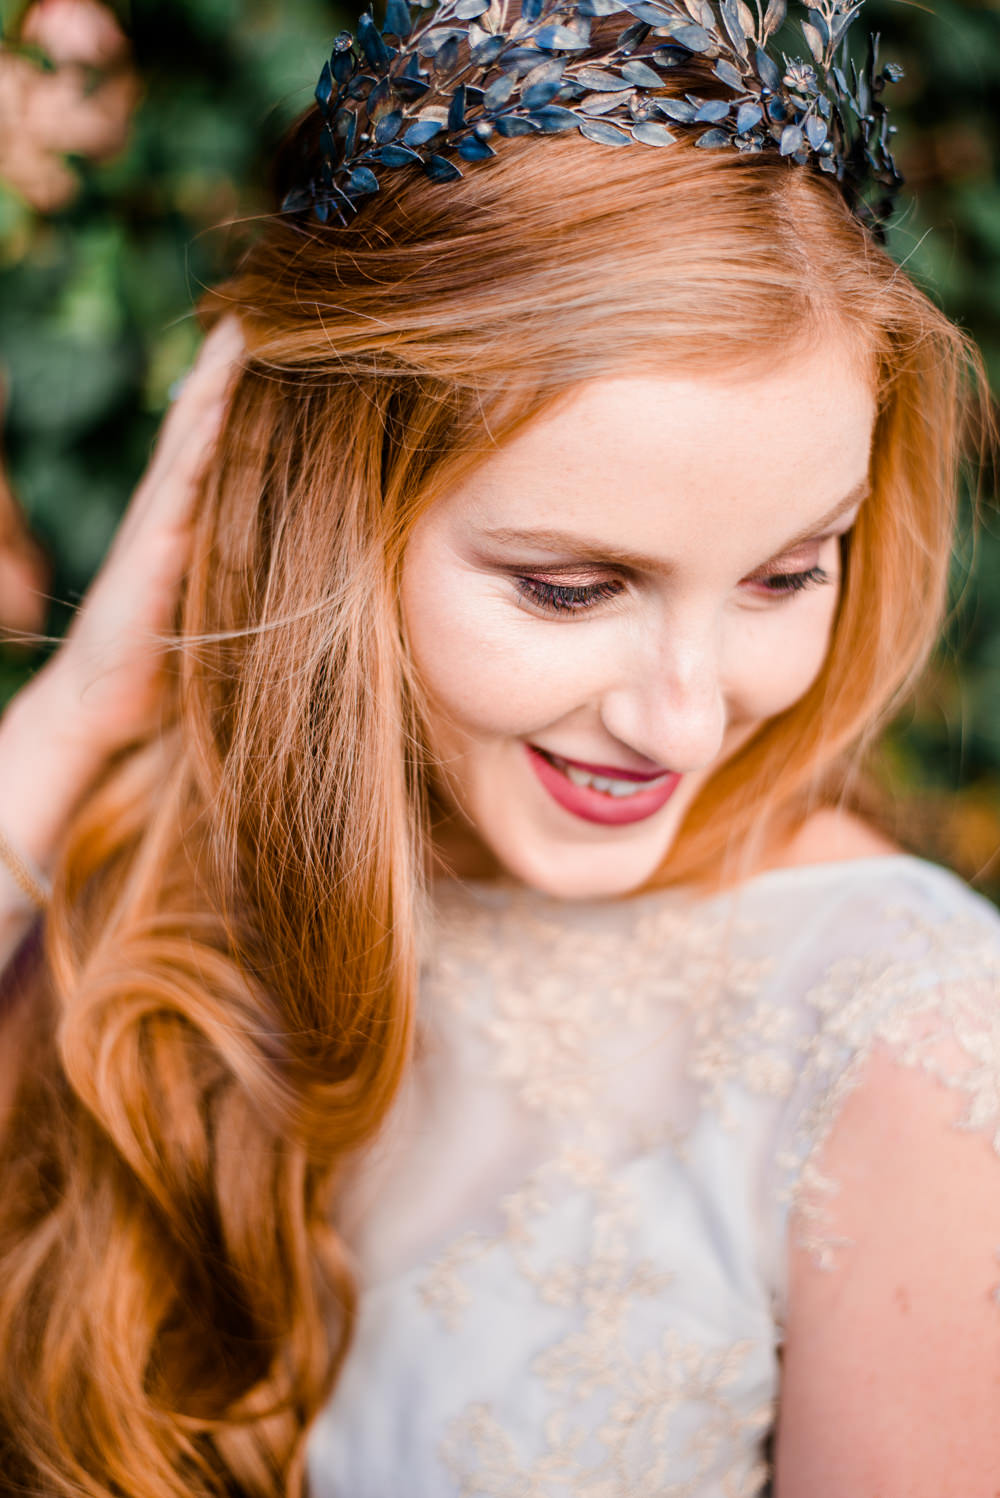 Hair Bride Bridal Loose Waves Style Curls Autumnal Fairytale Wedding Ideas Miriam Peuser Photography